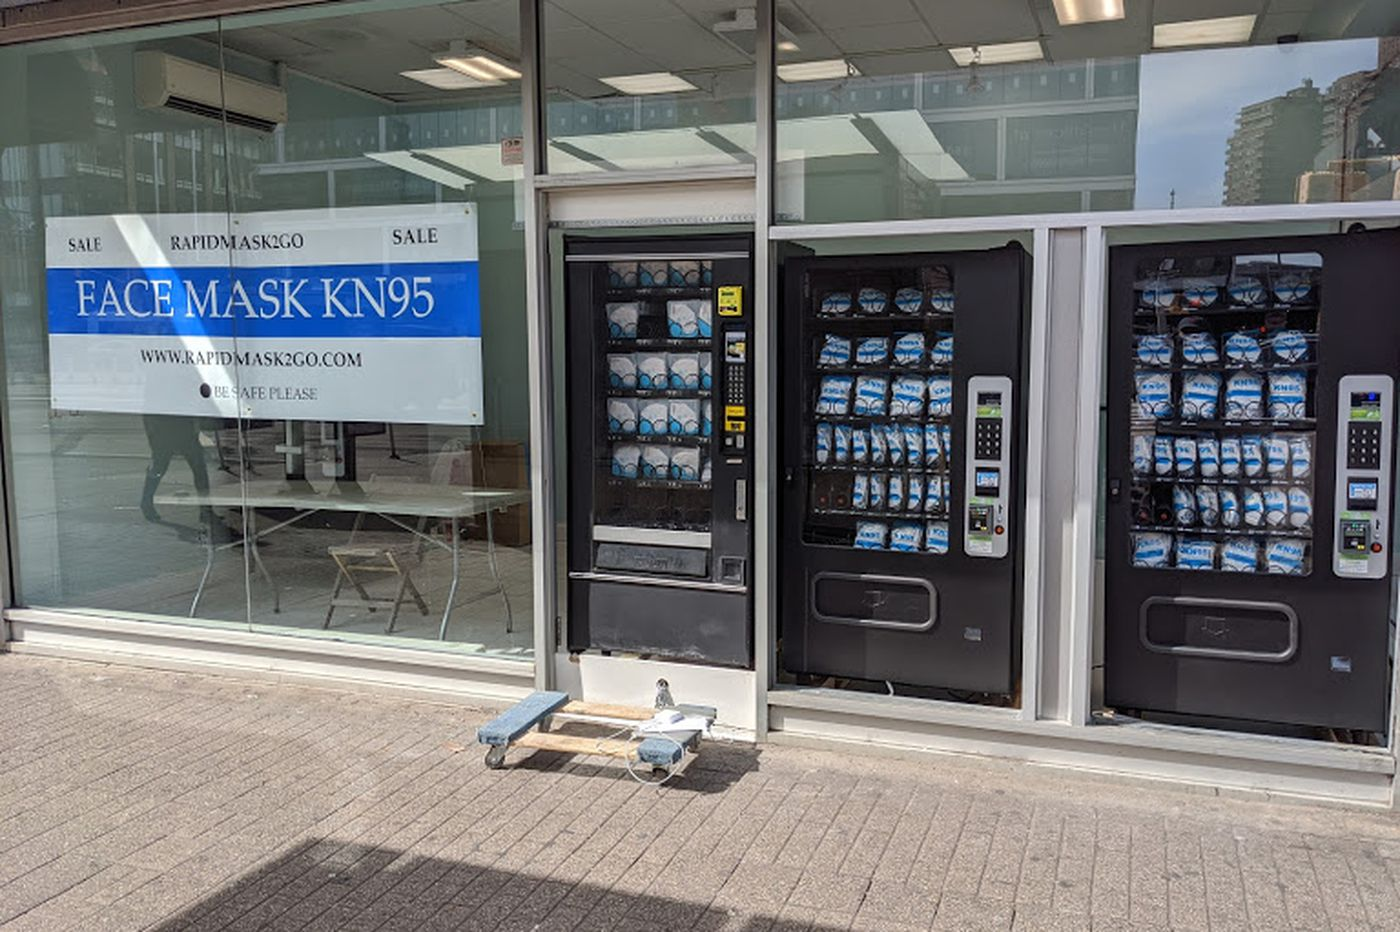 PPE vending machines could come to Philly as the region preps for reopening